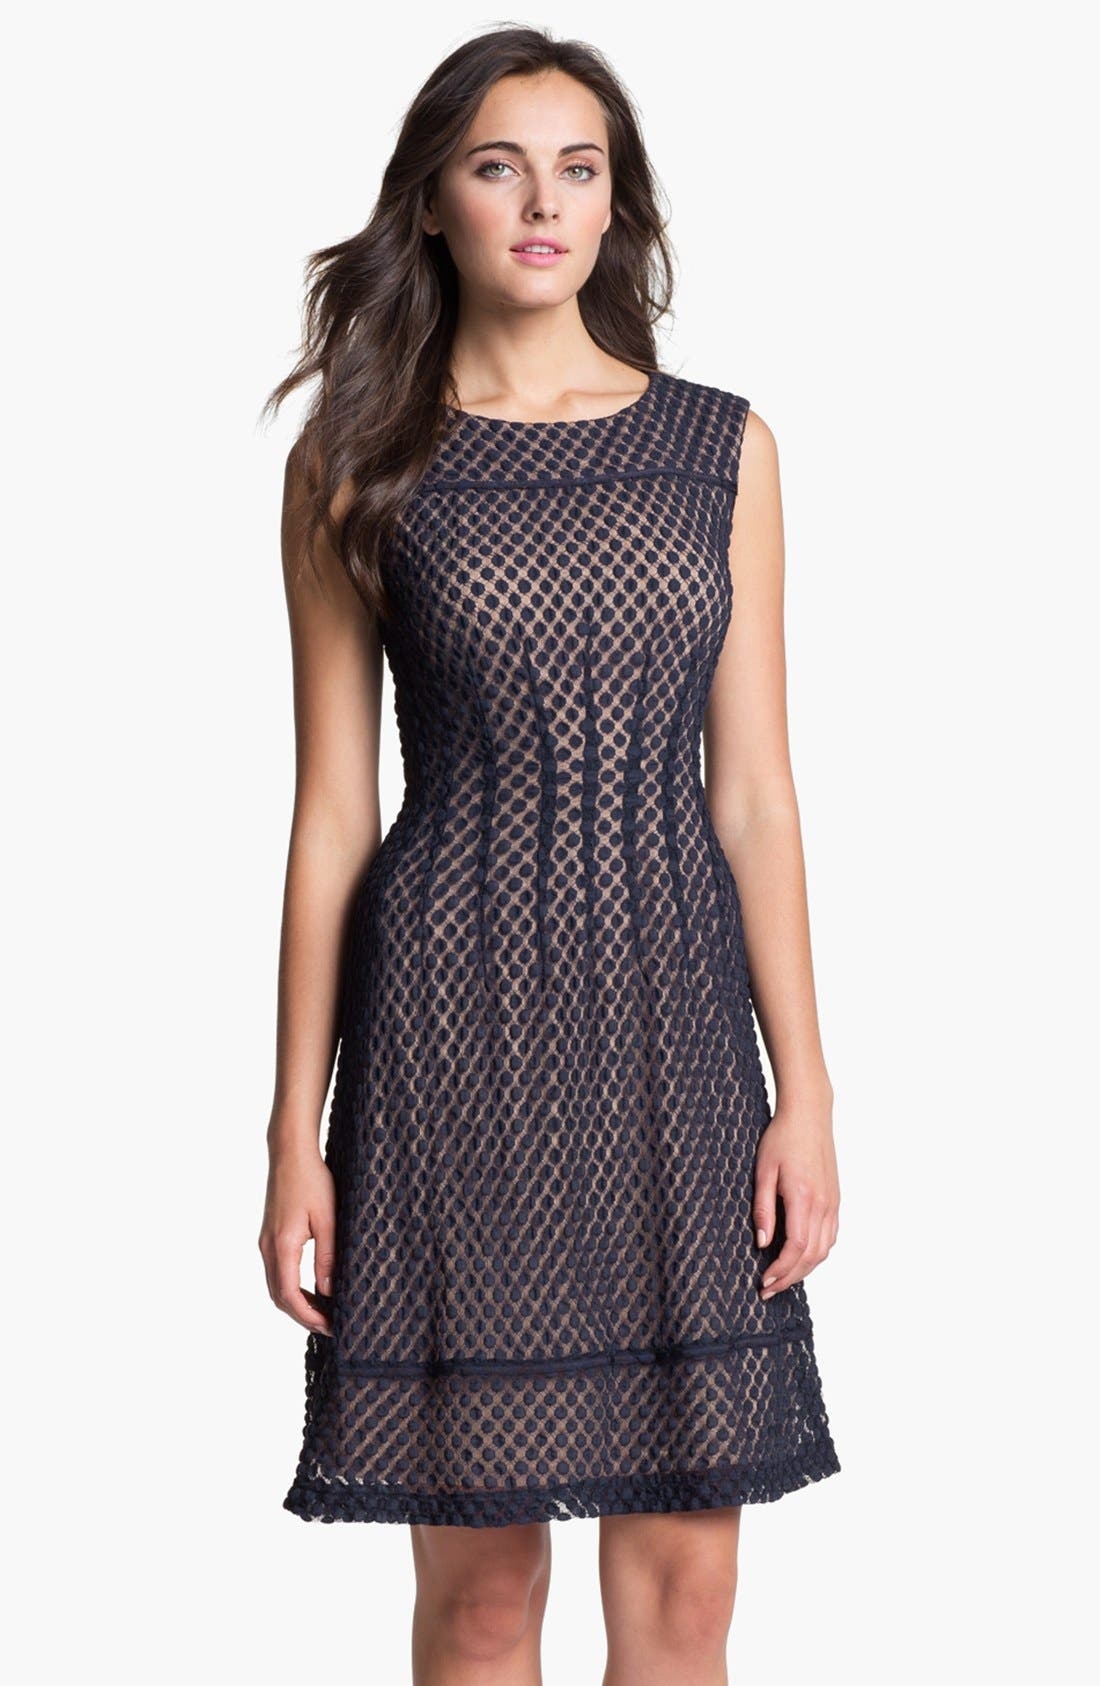 Alternate Image 1 Selected - Adrianna Papell Sleeveless Dot Lace Shift Dress (Regular & Petite)